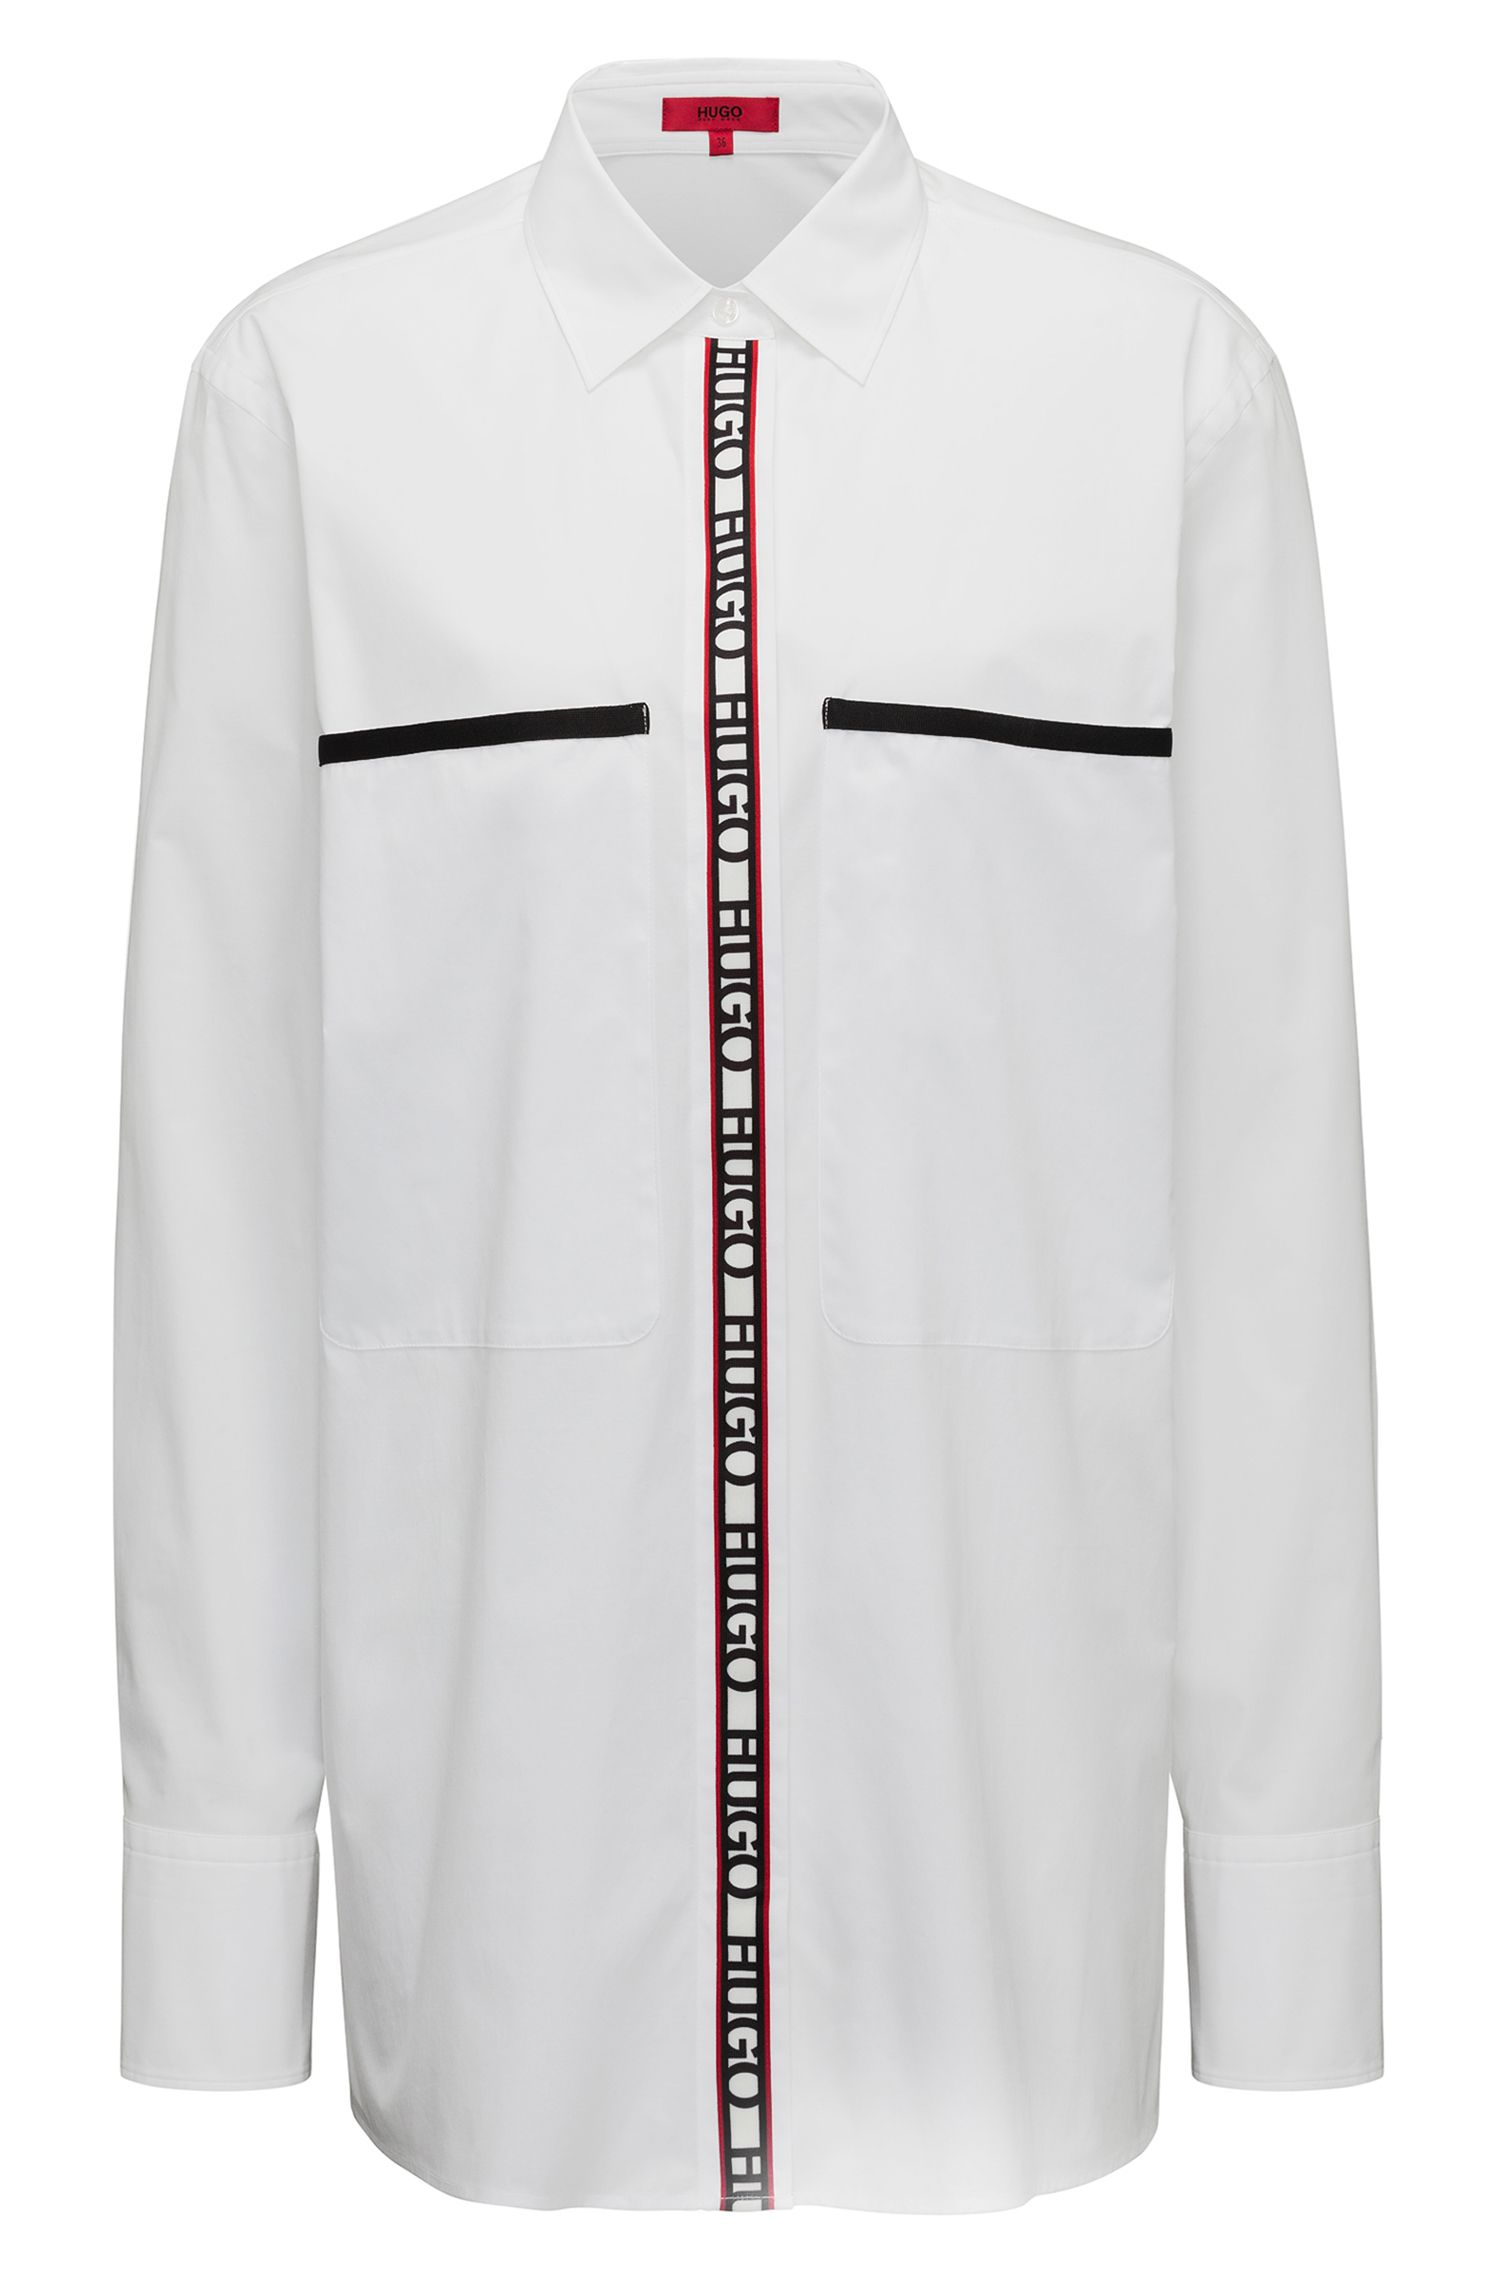 Chemisier Oversized Fit en coton stretch avec bande logo, Blanc